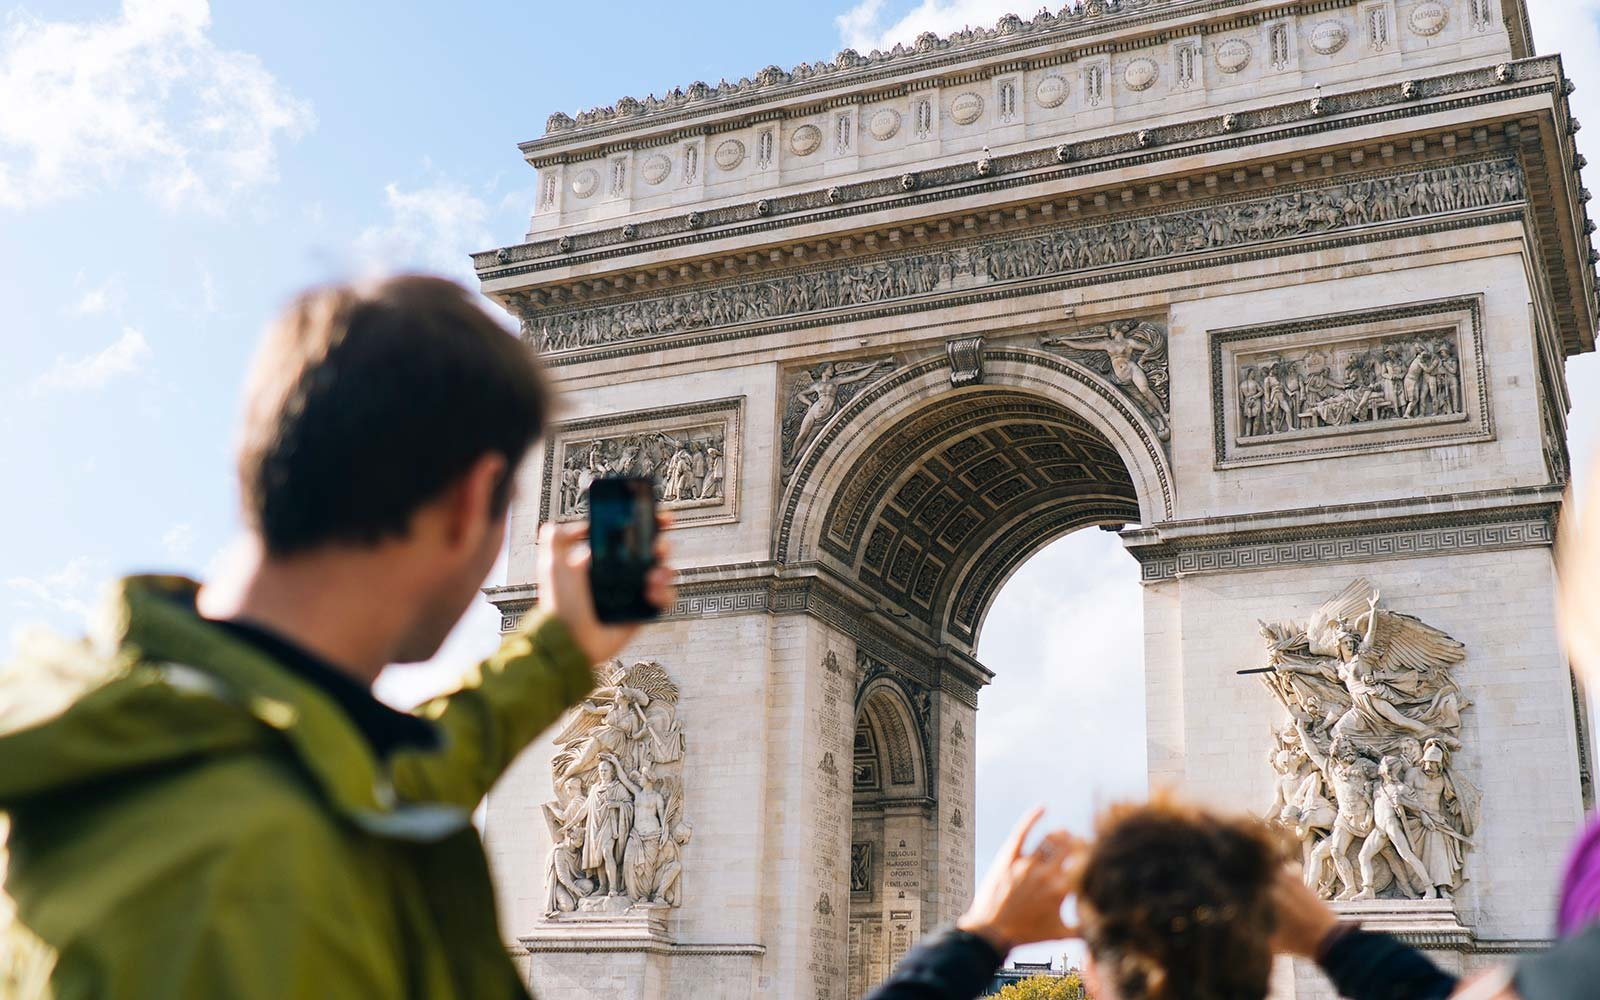 Arc de Triomphe Paris France Tourists Landmark Photo Camera Phone Lens